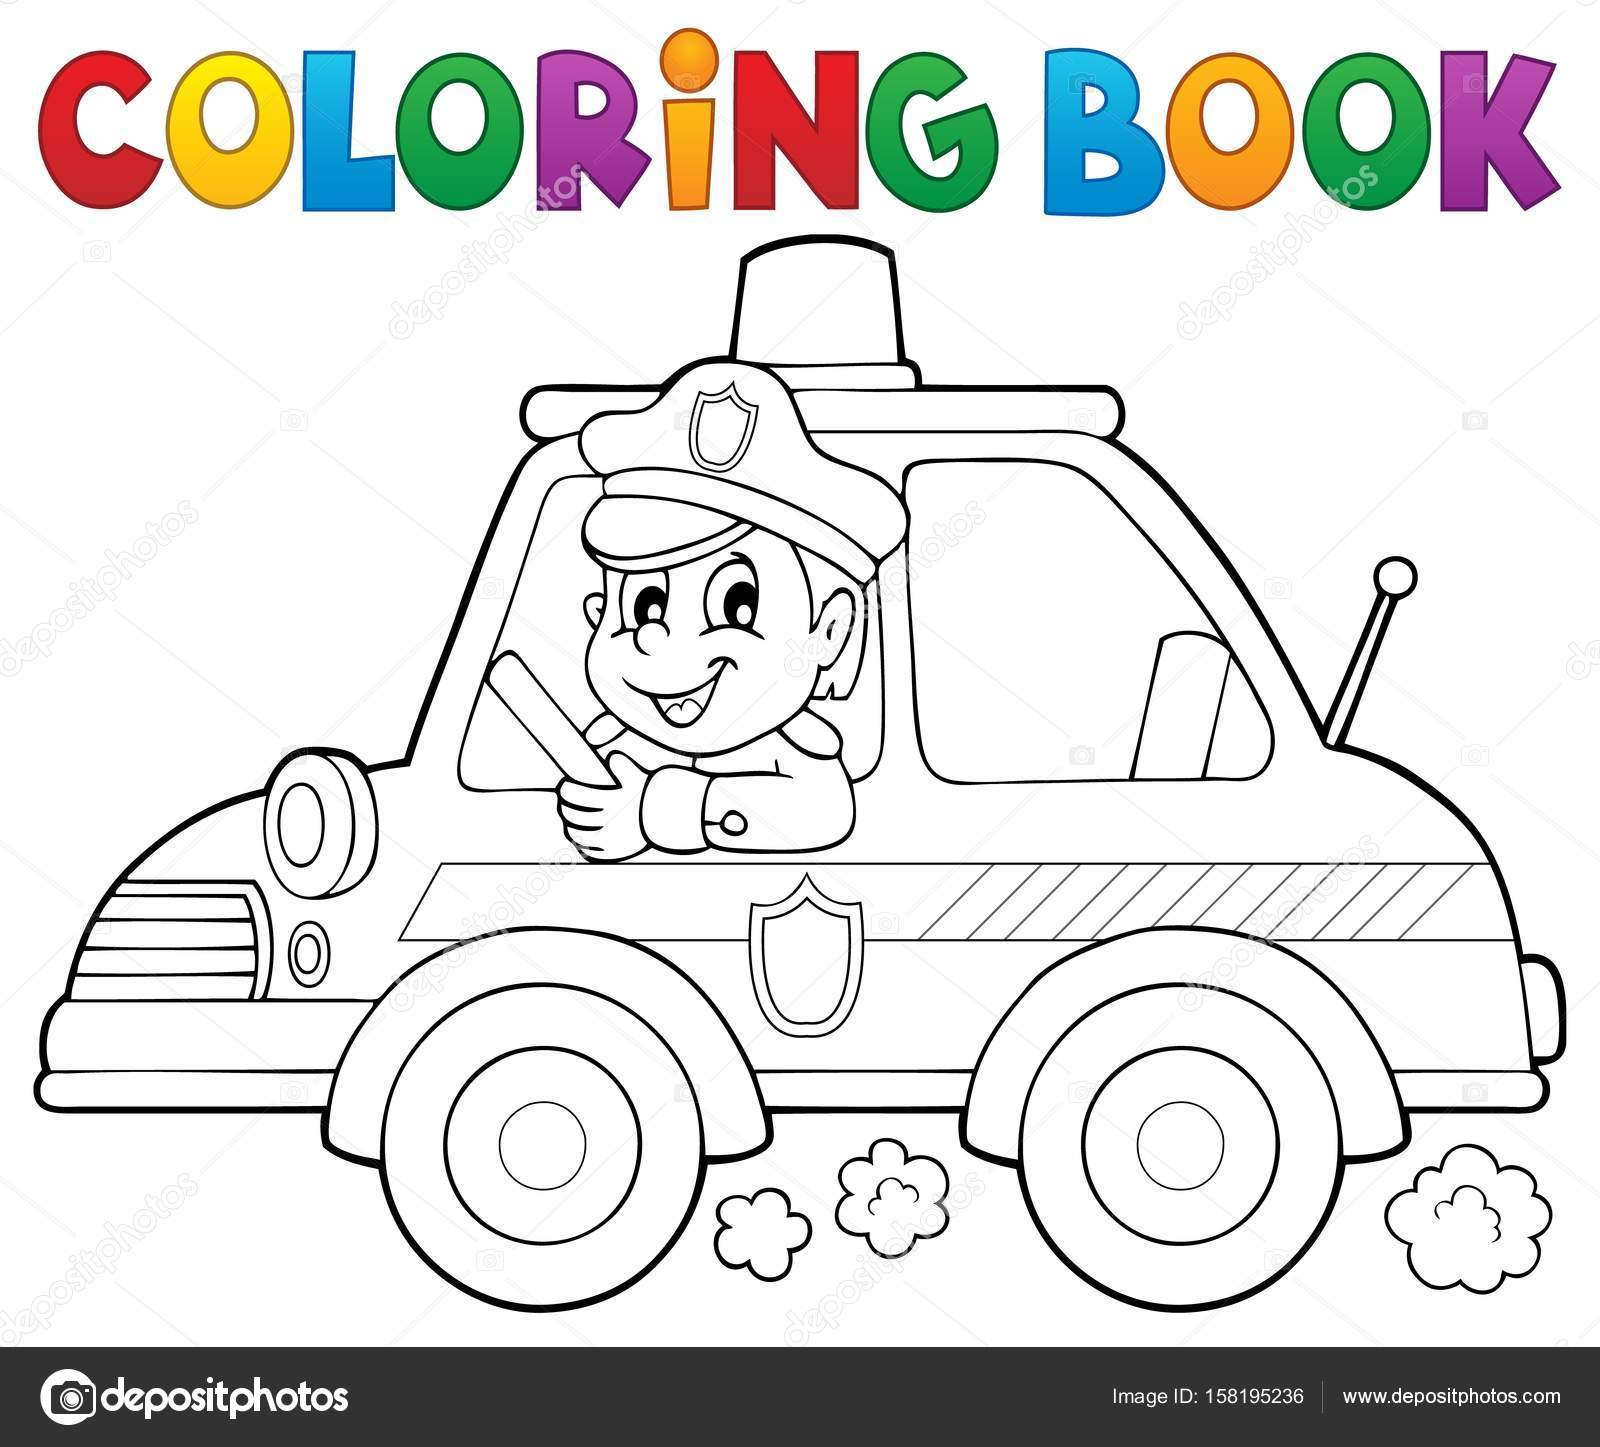 Top 10 printable stock car coloring pages 2018 kate for Stock car coloring pages